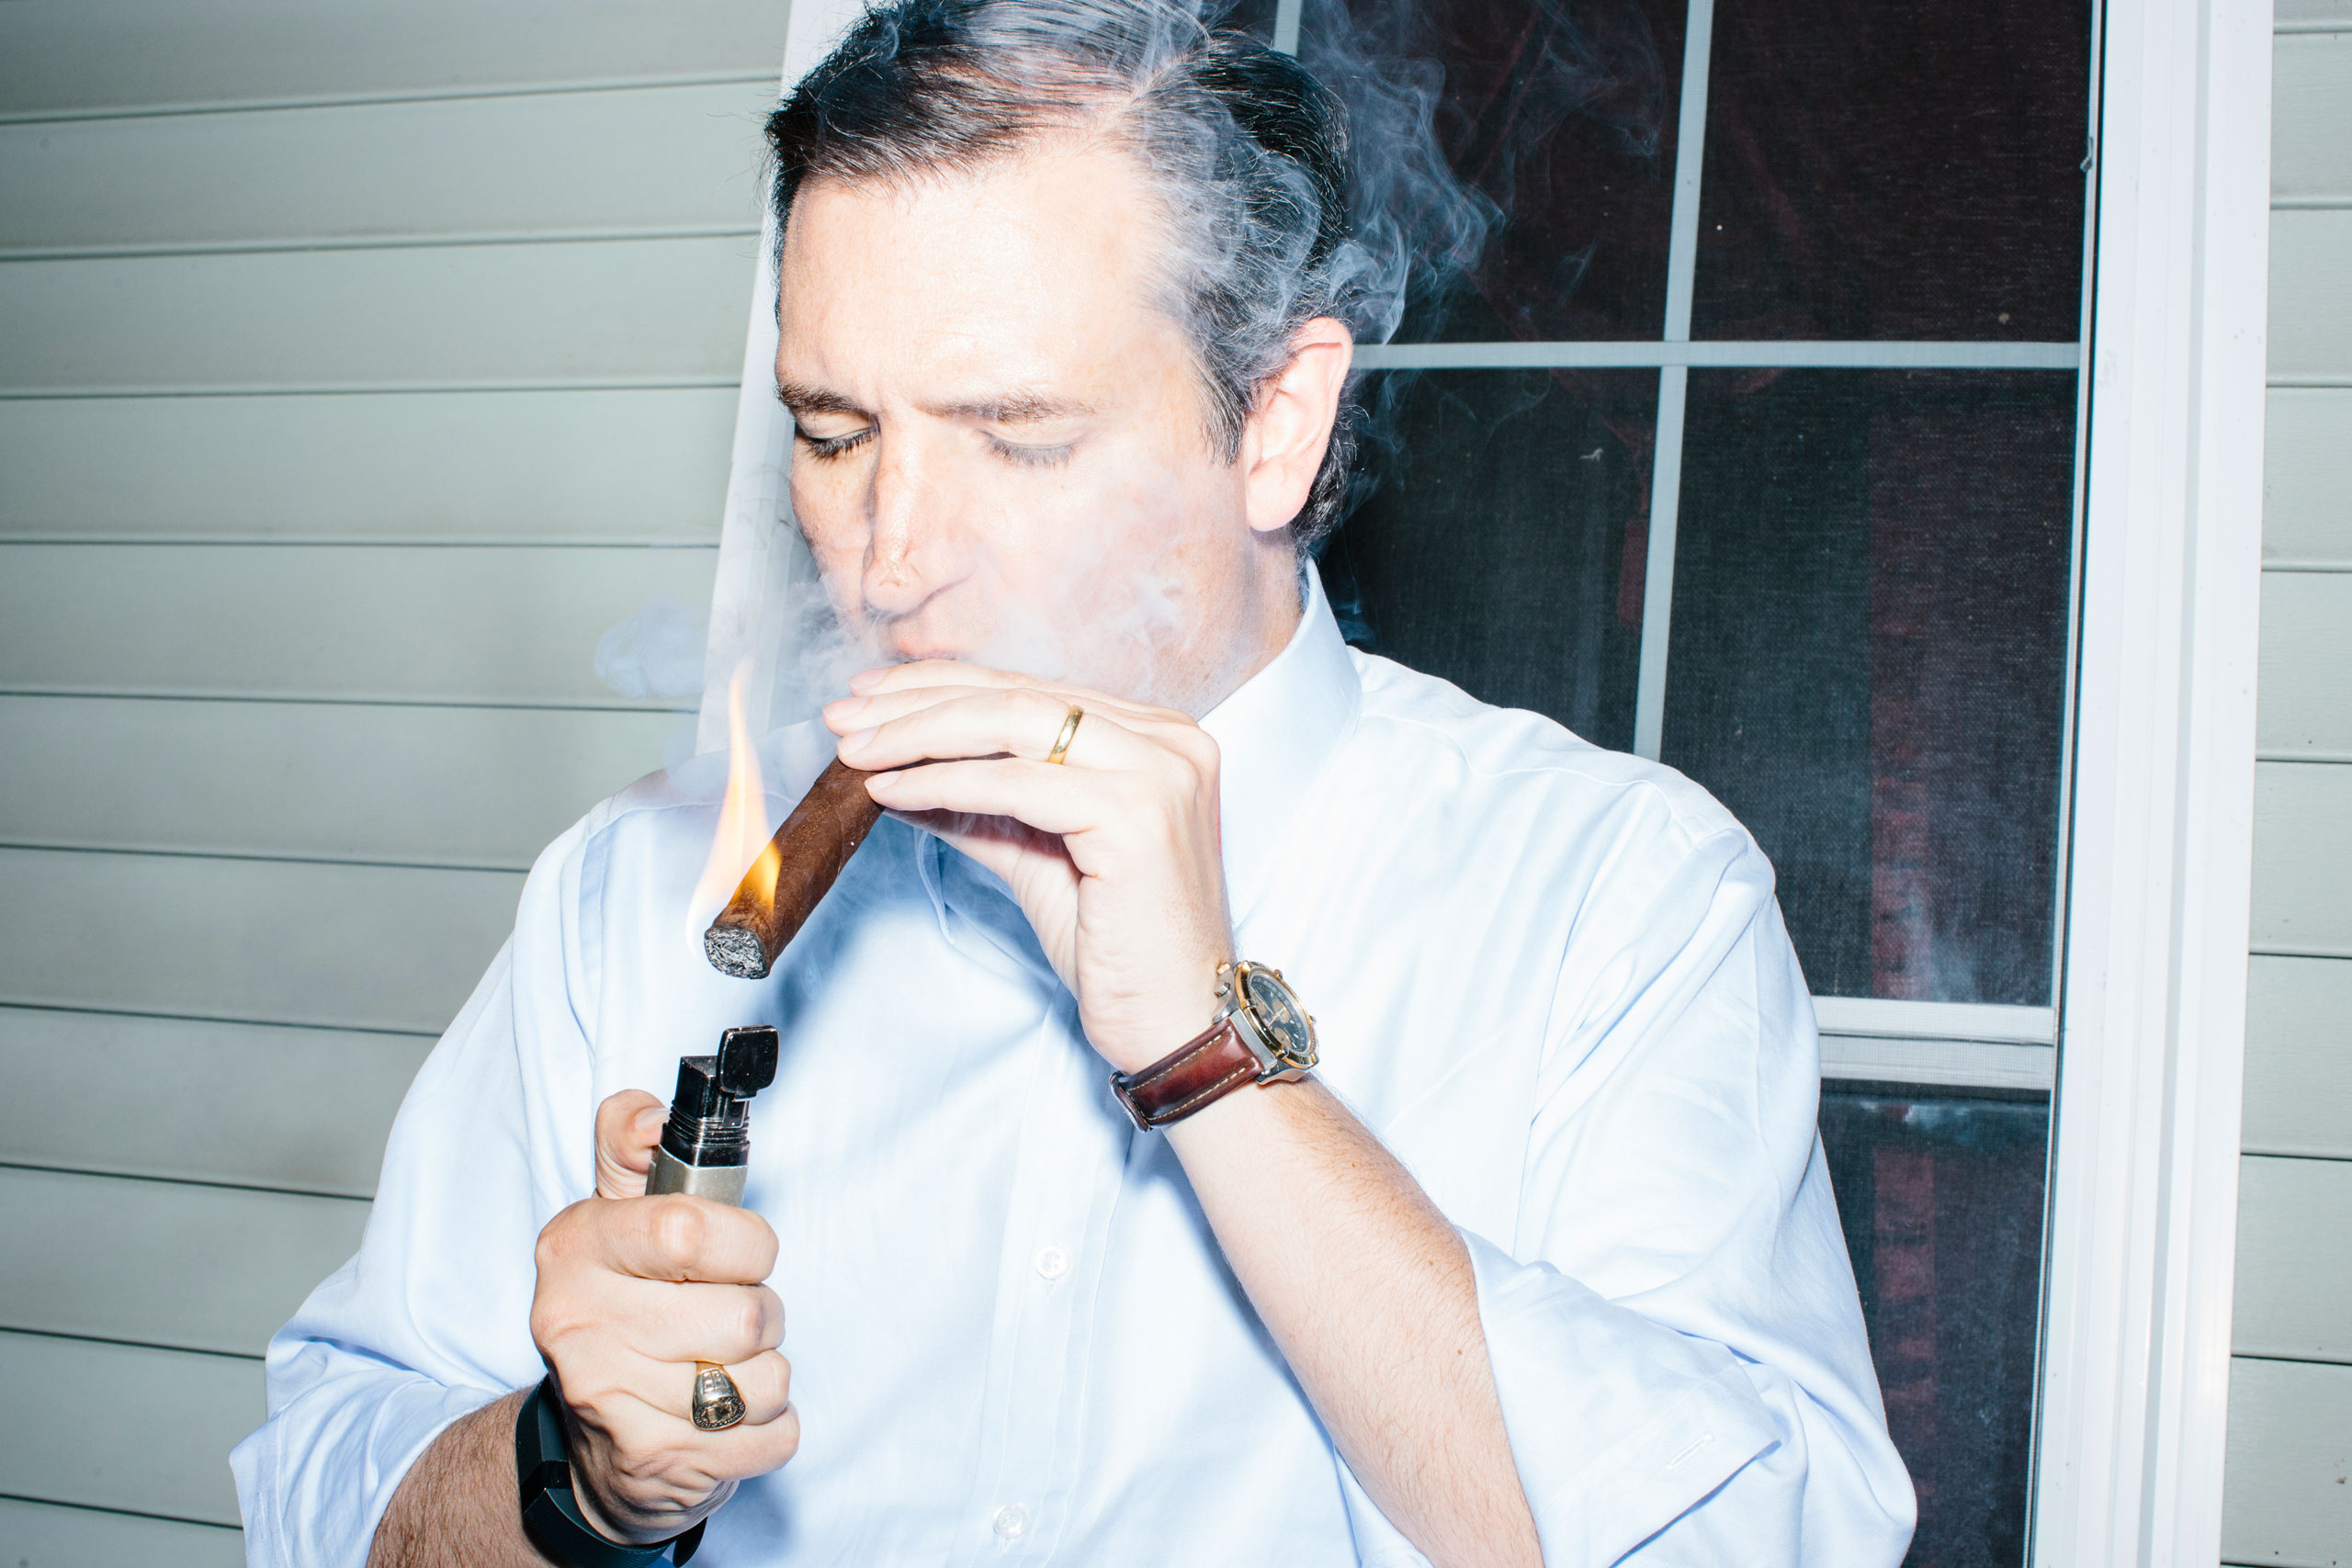 Texas senator and Republican presidential candidate Ted Cruz smokes a cigar after speaking at an event called  Smoke a cigar with Ted Cruz  at a house party at the home of Linda and Steven Goddu in Salem, N.H.